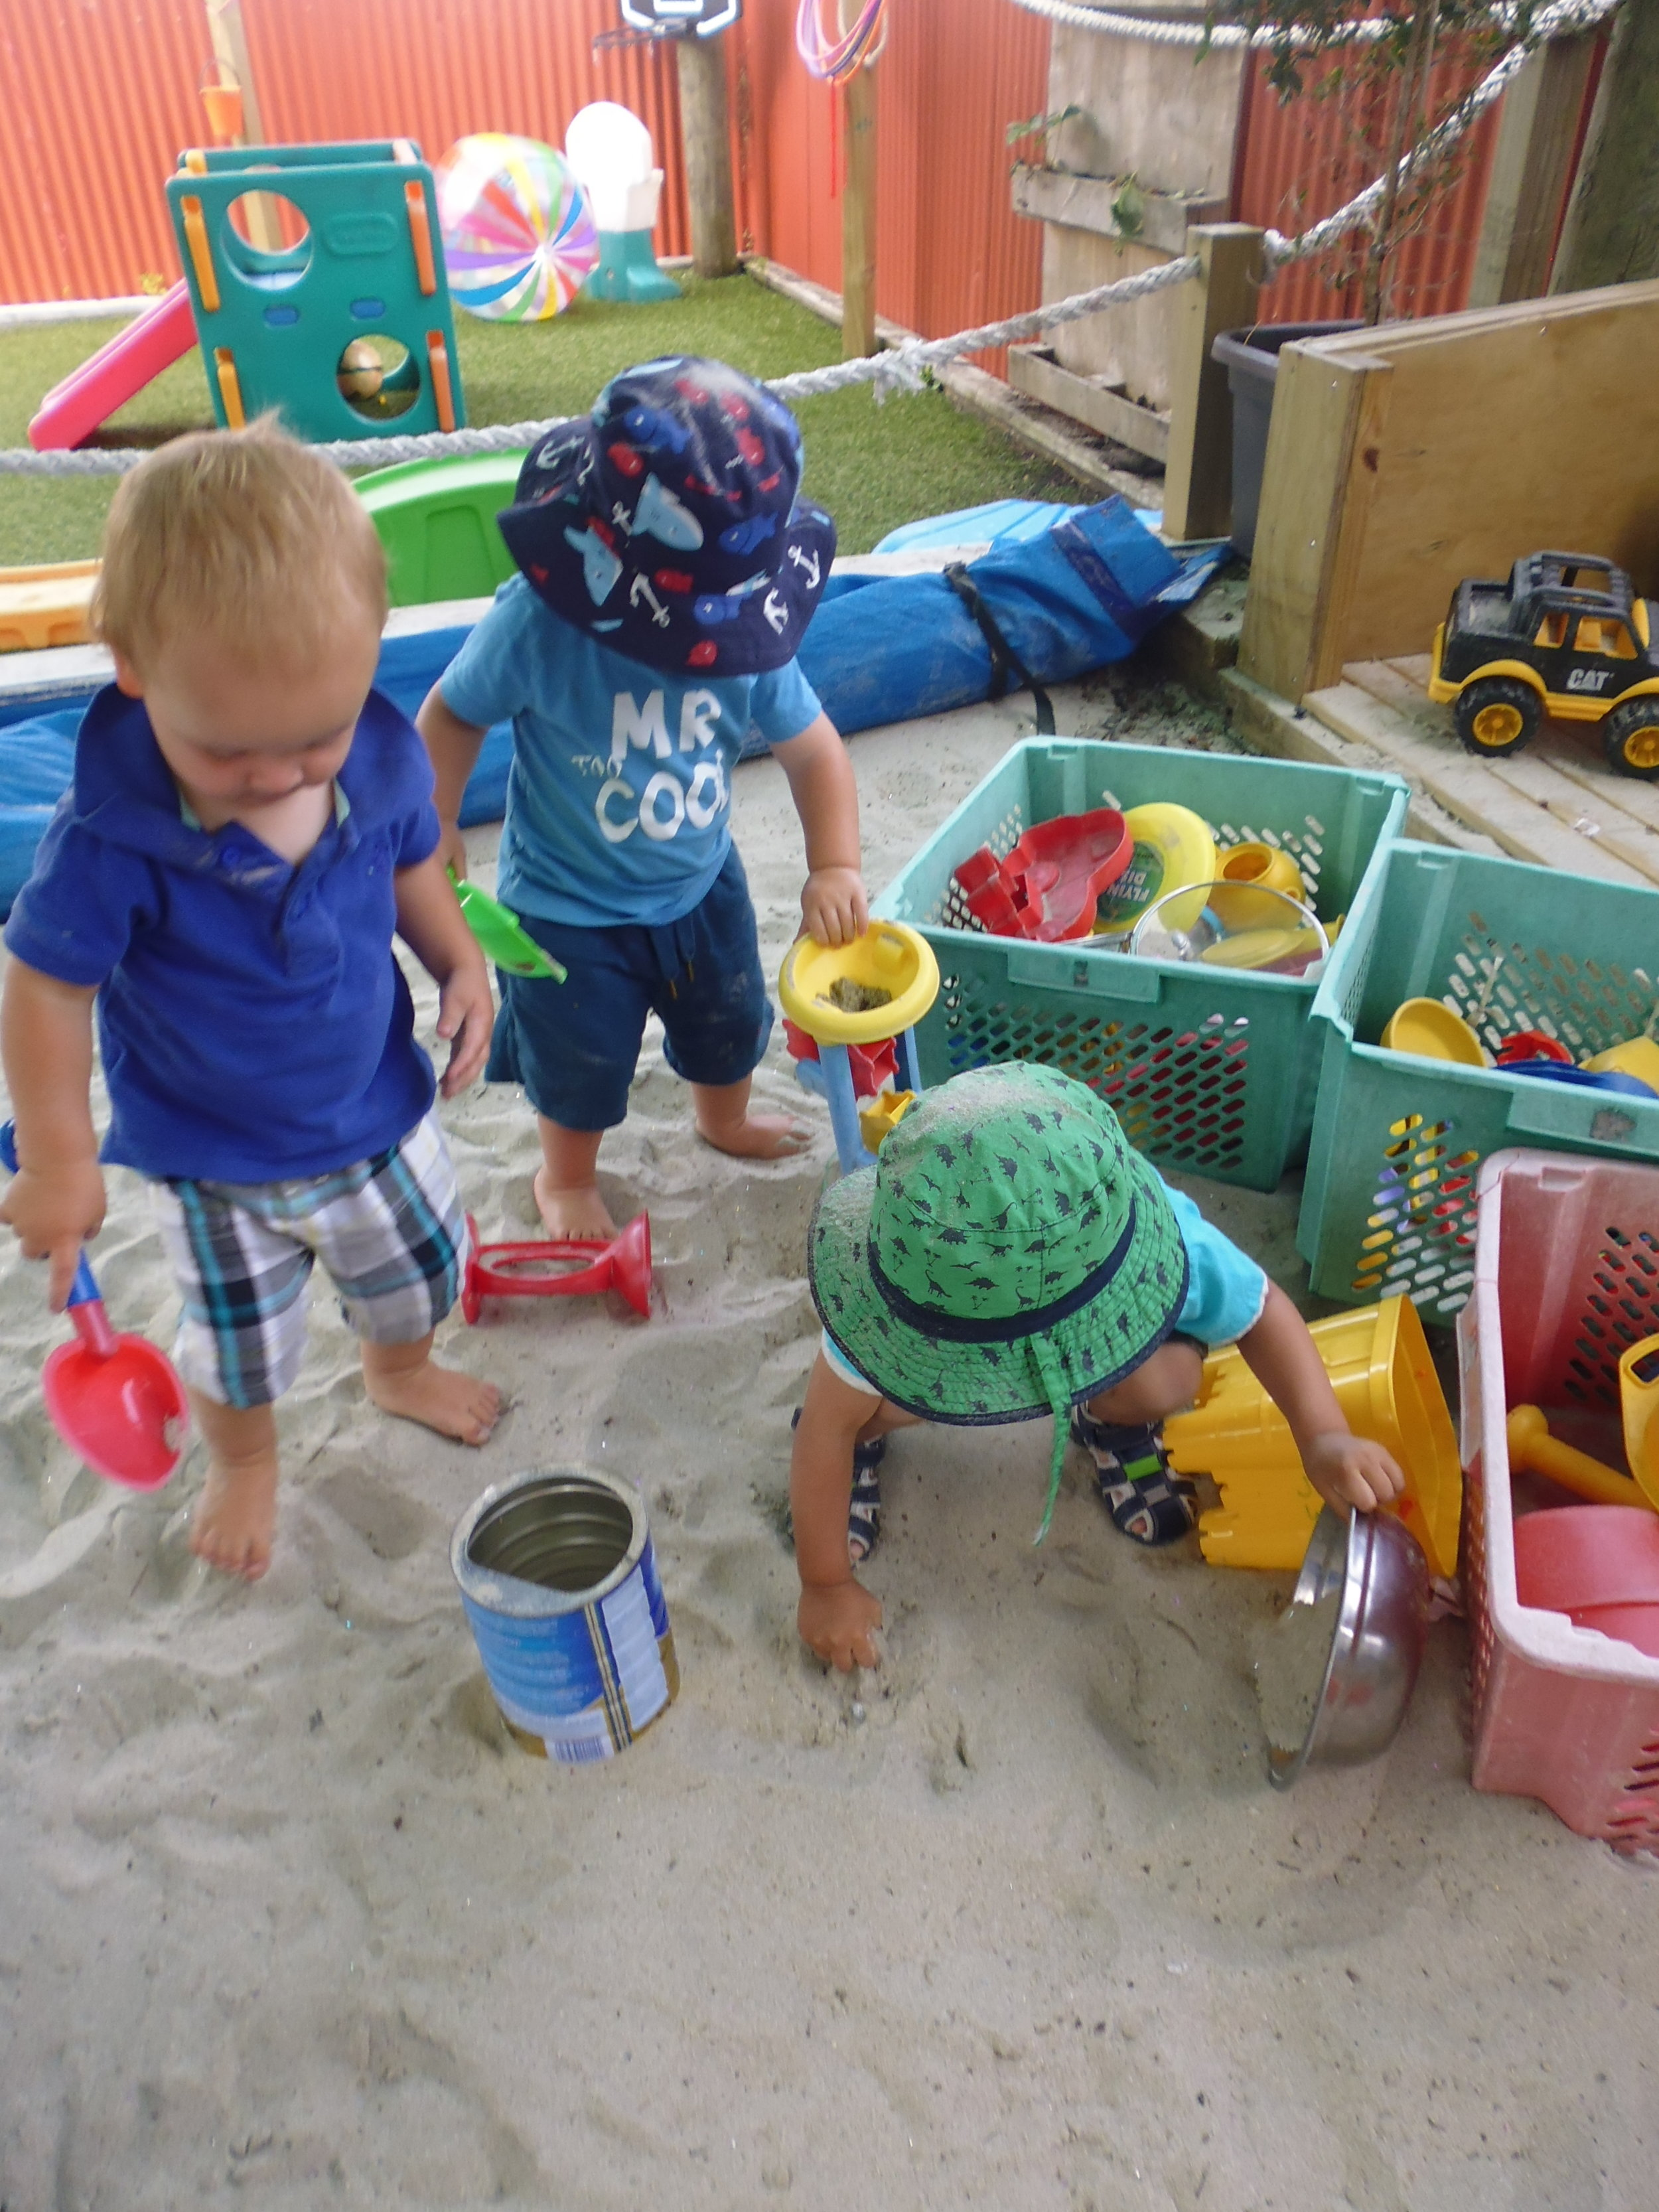 Building Relationships through Play